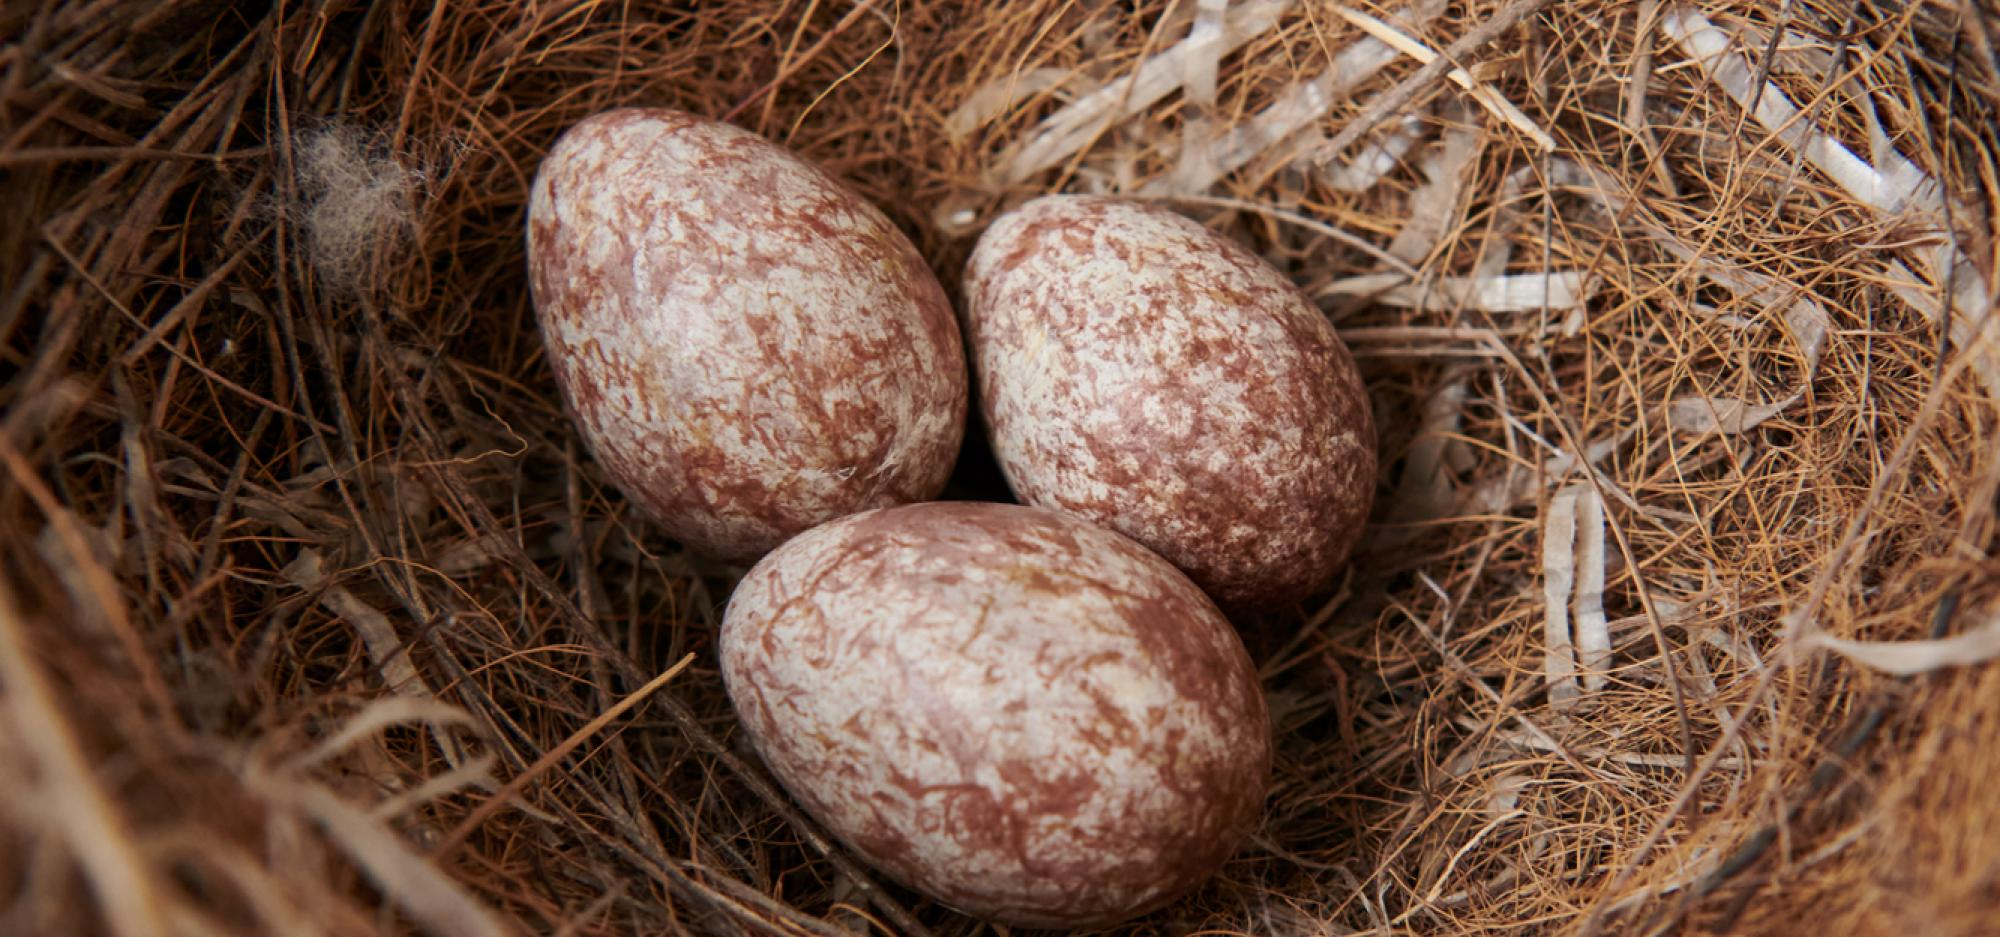 Three eggs in a large nest